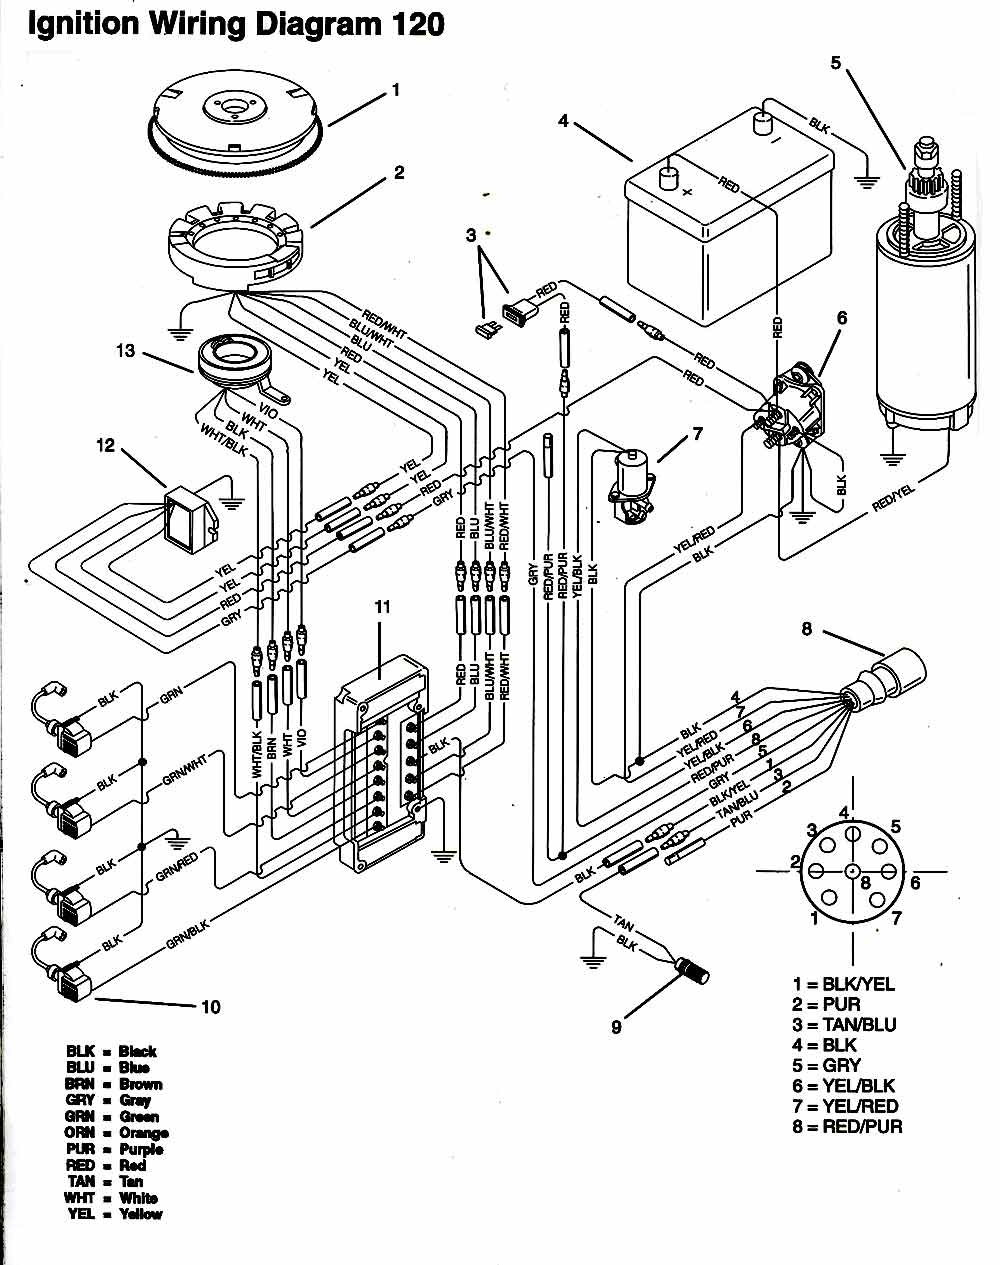 free marine wiring diagrams marine wiring diagrams sailboat mast yamaha outboard wiring diagram pdf | free wiring diagram